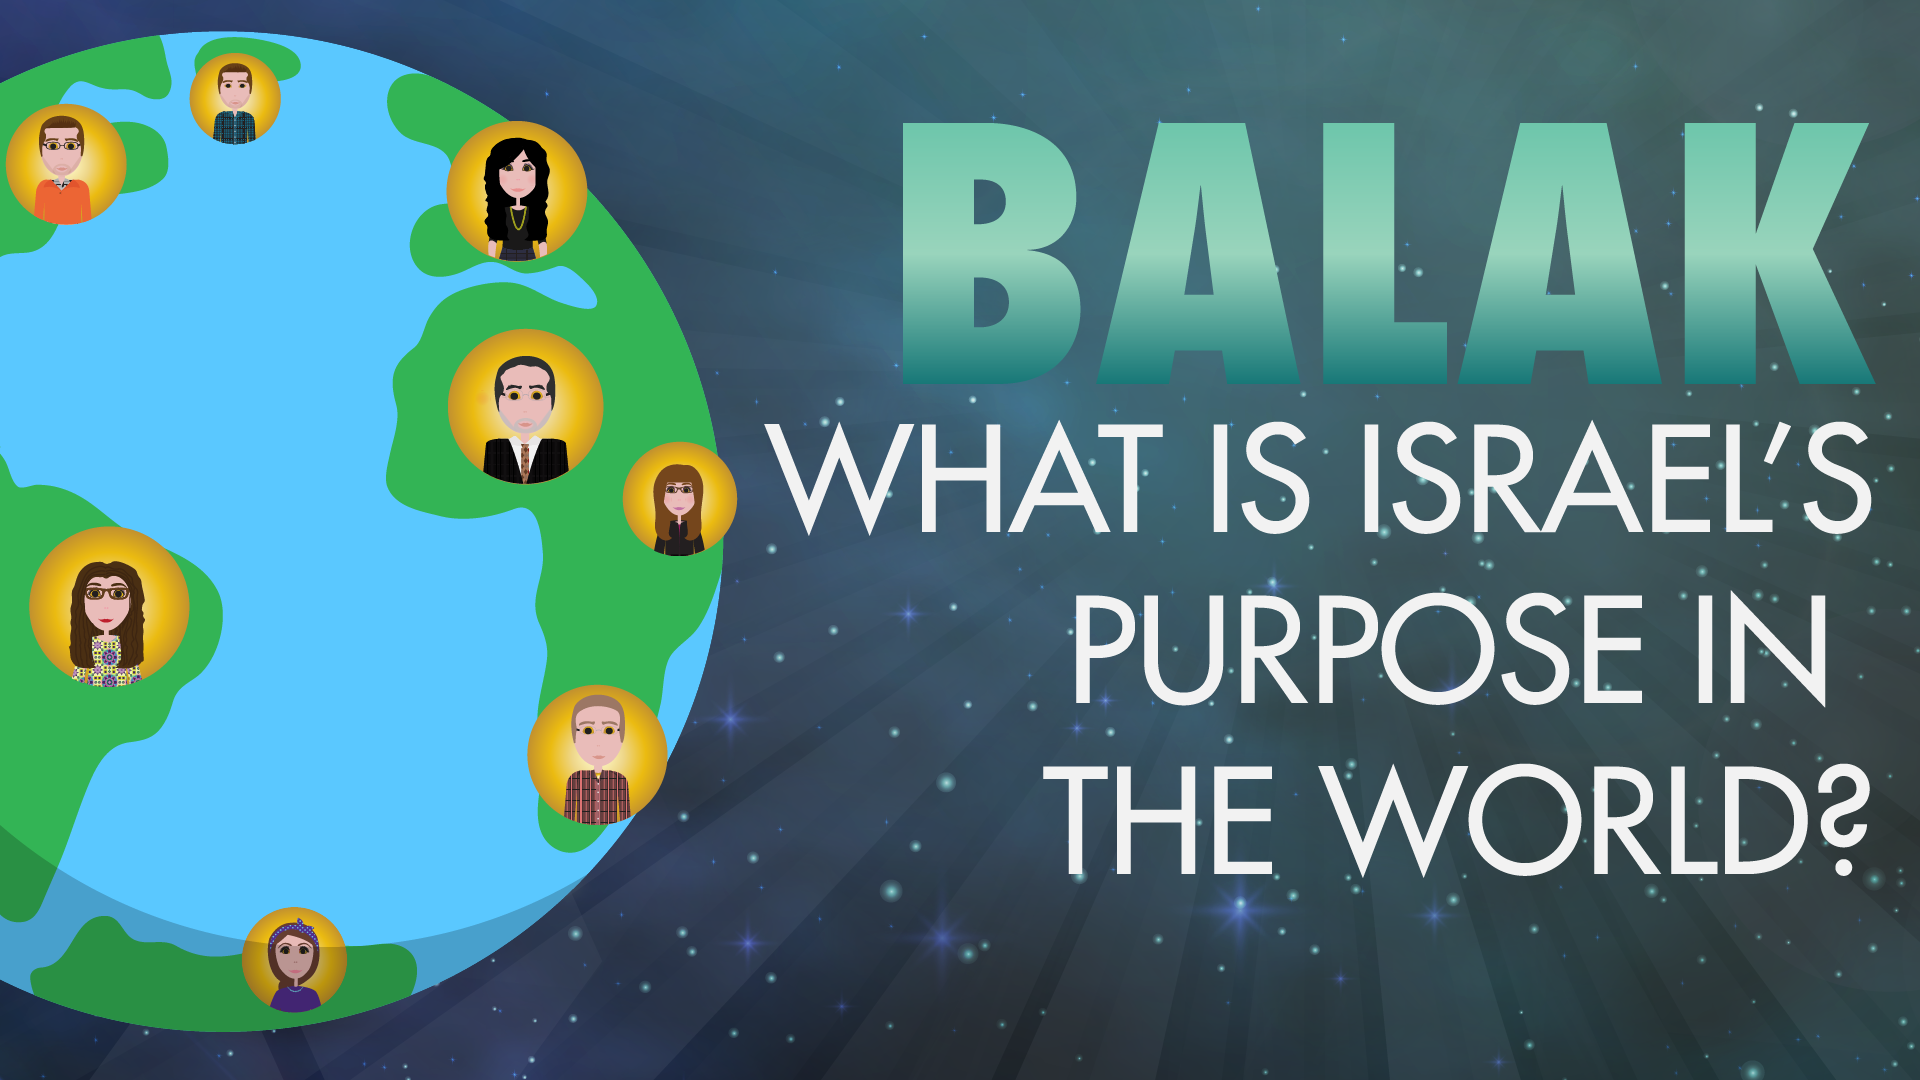 Balak: What Is Israel's Purpose In The World?